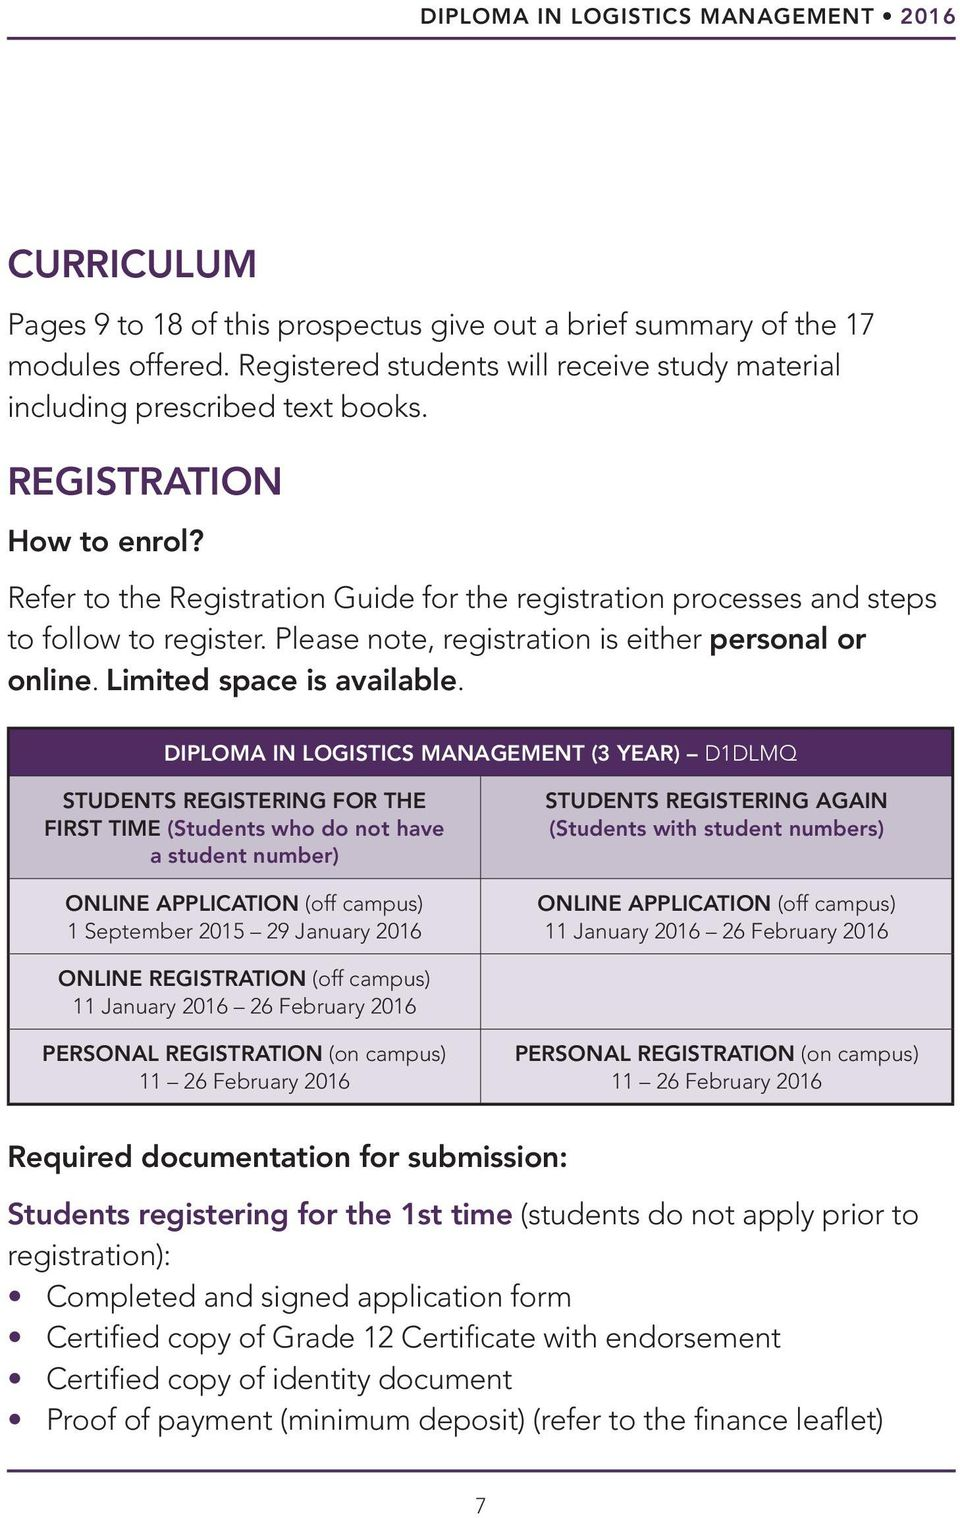 Refer to the Registration Guide for the registration processes and steps to follow to register. Please note, registration is either personal or online. Limited space is available.